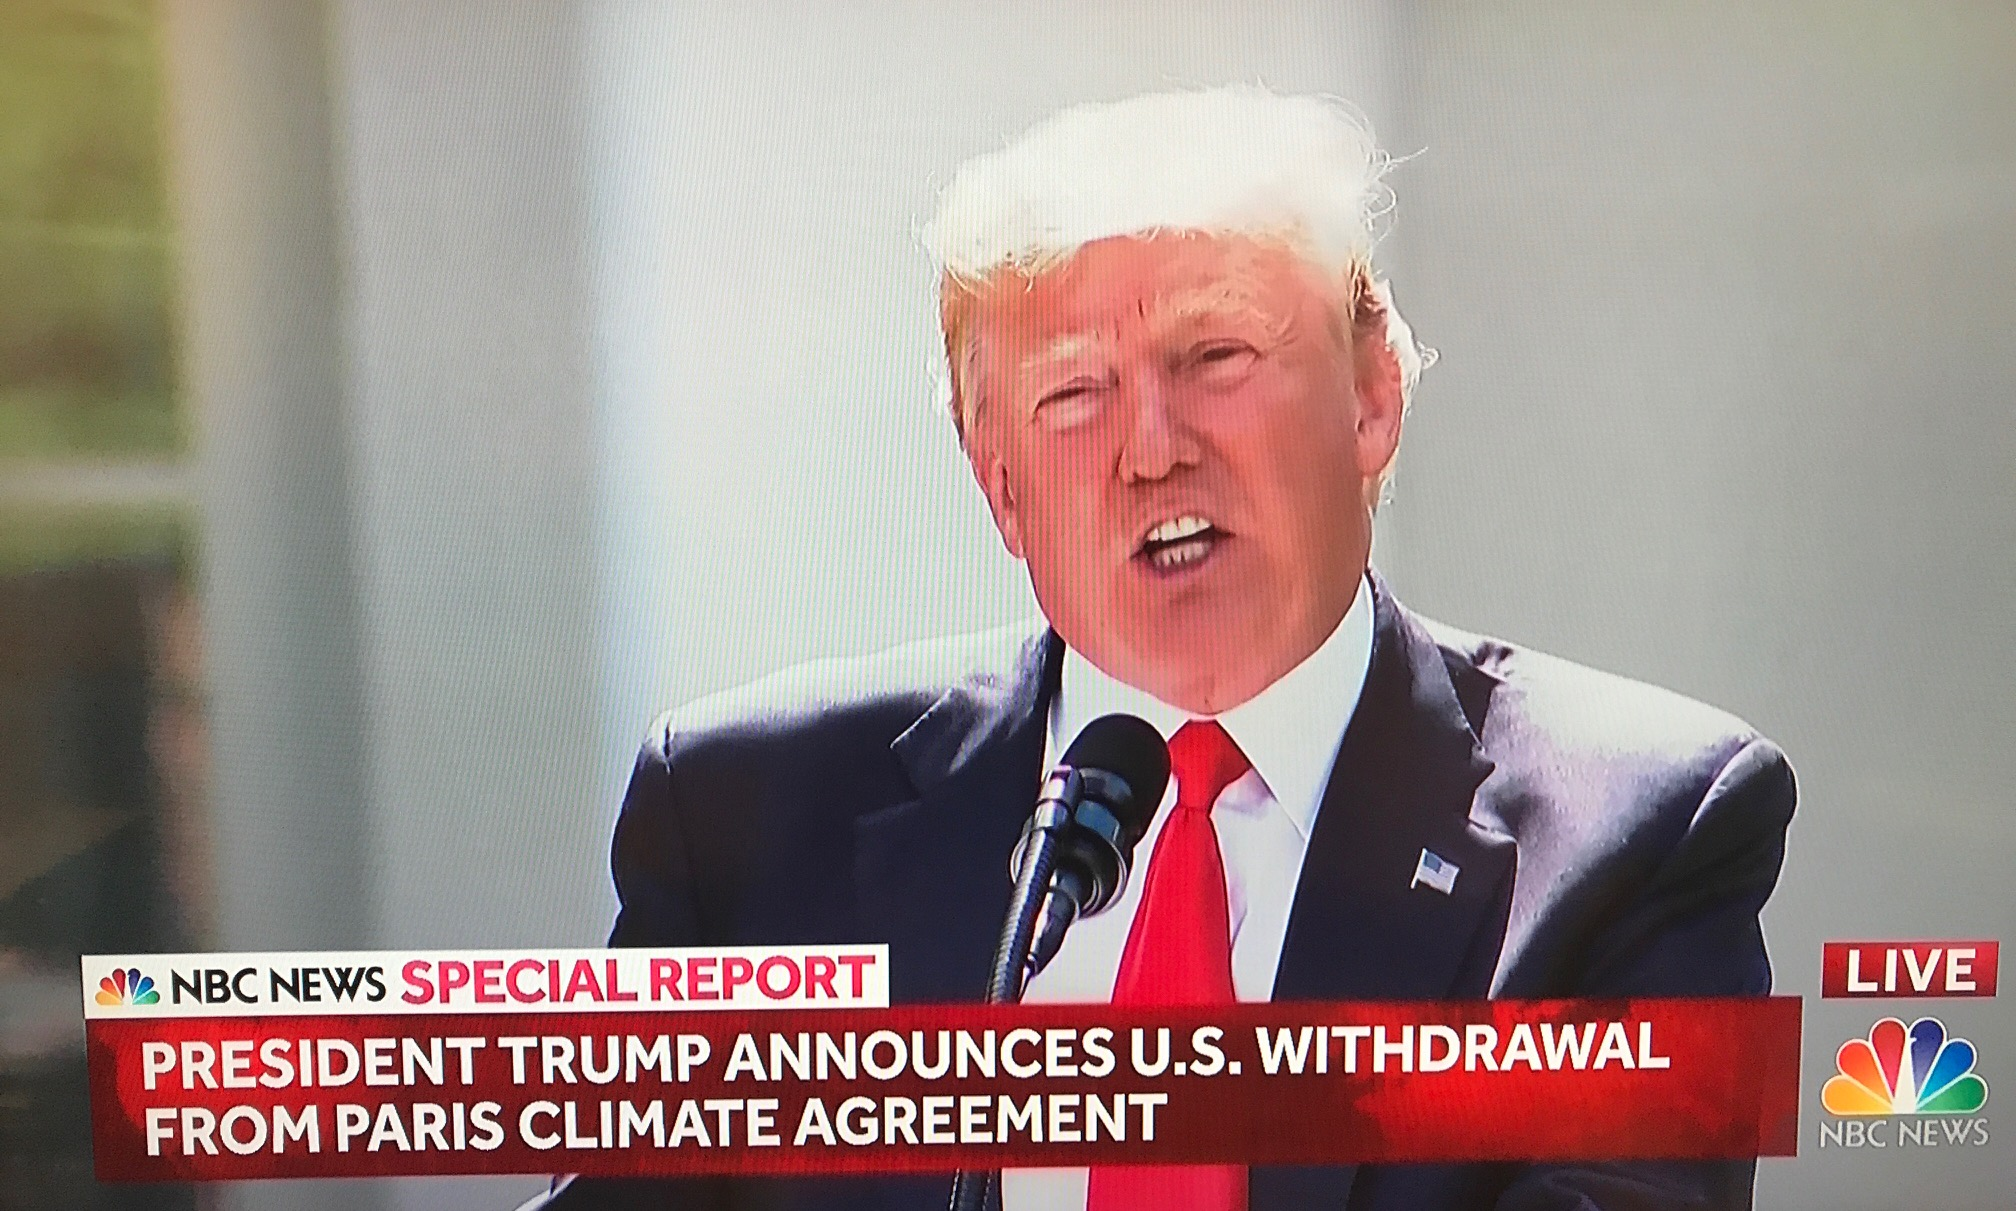 President Trump Announces U.S. Withdrawal From Paris Agreement